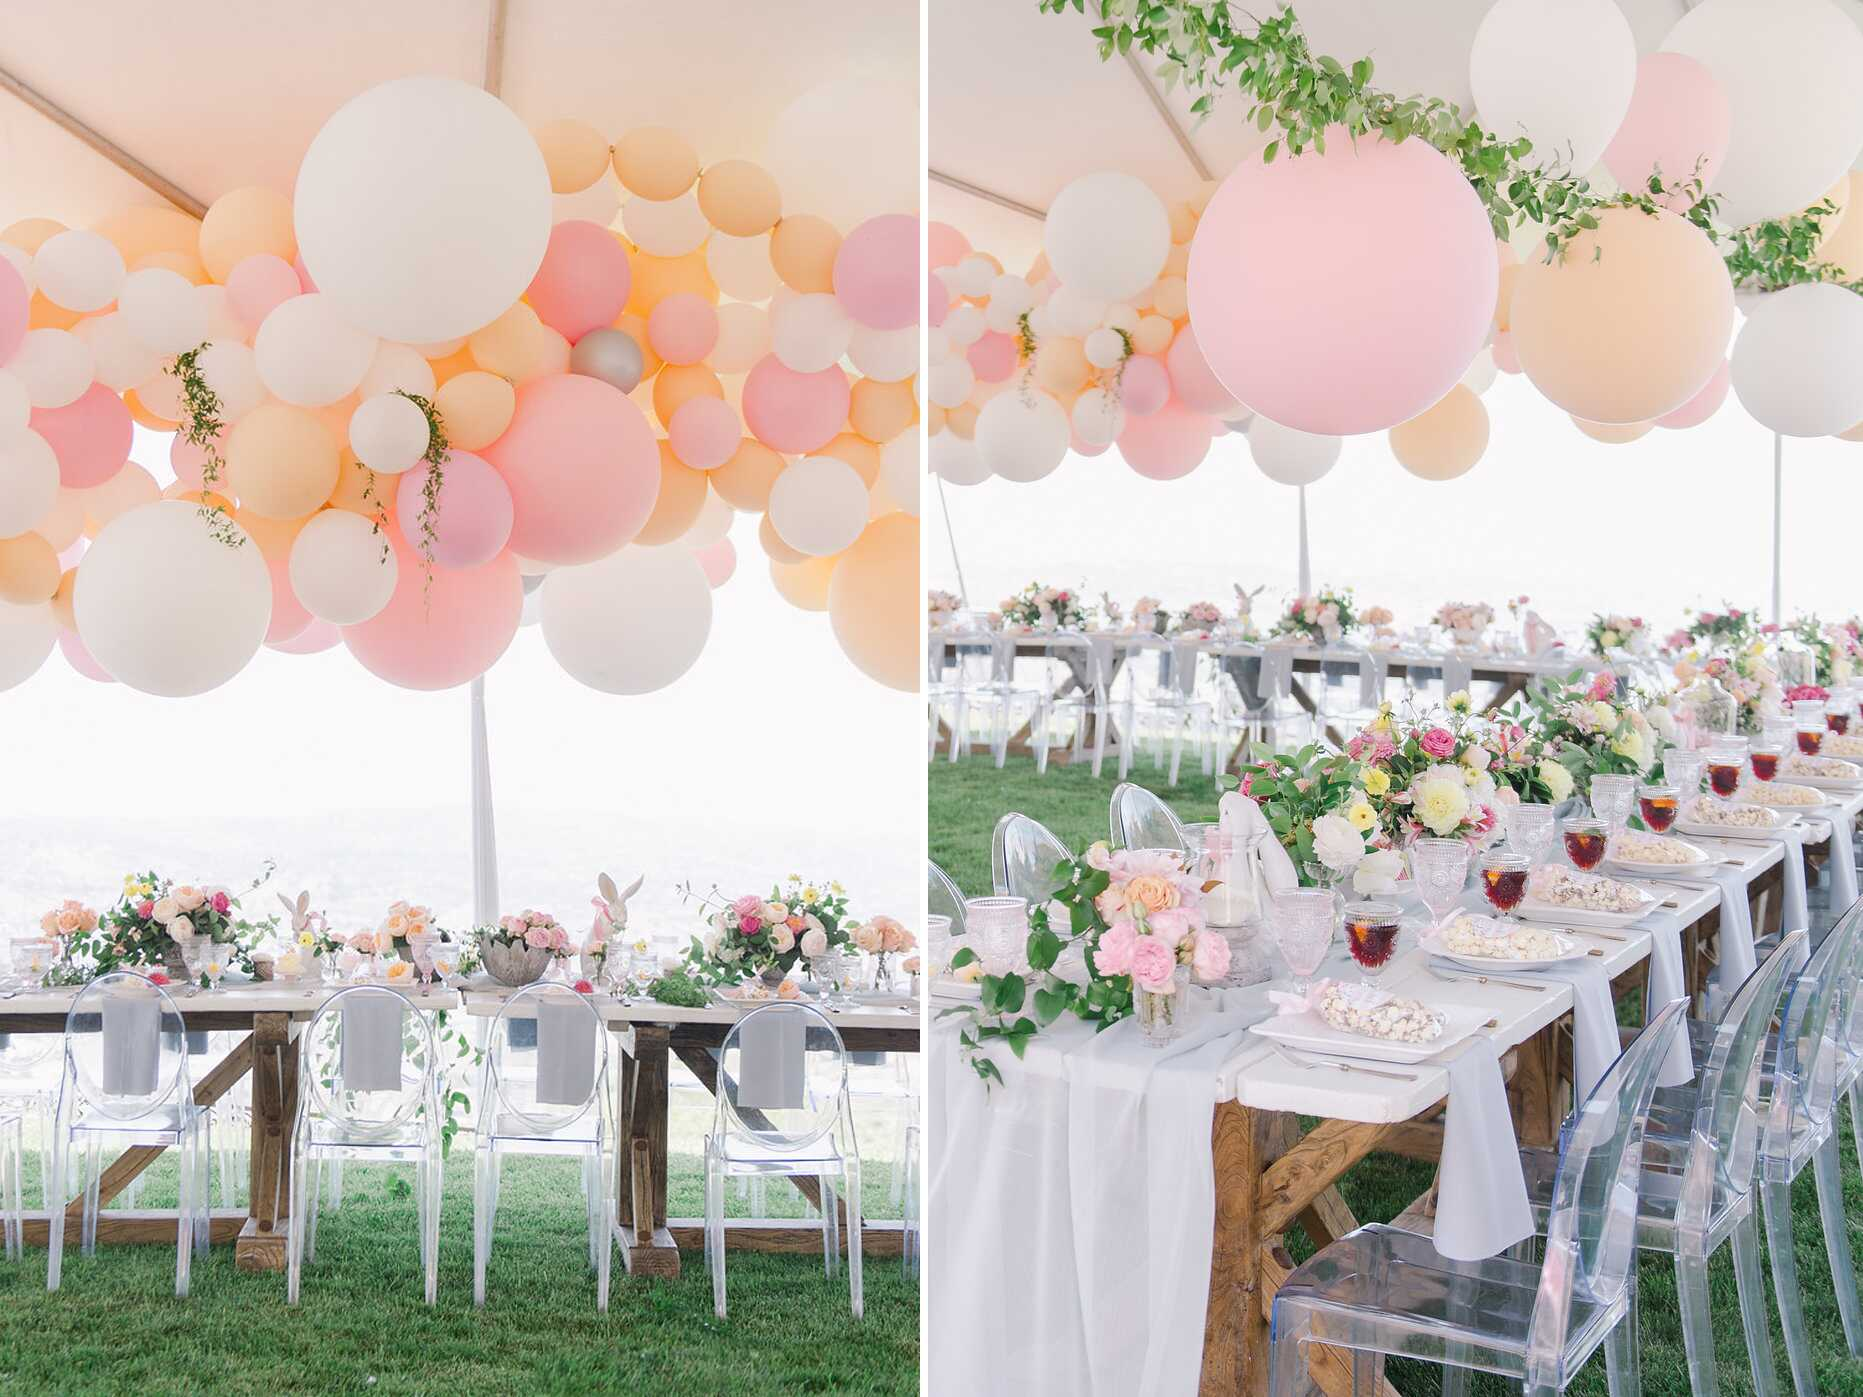 Pastel pink and white balloon garland hanging over long tables